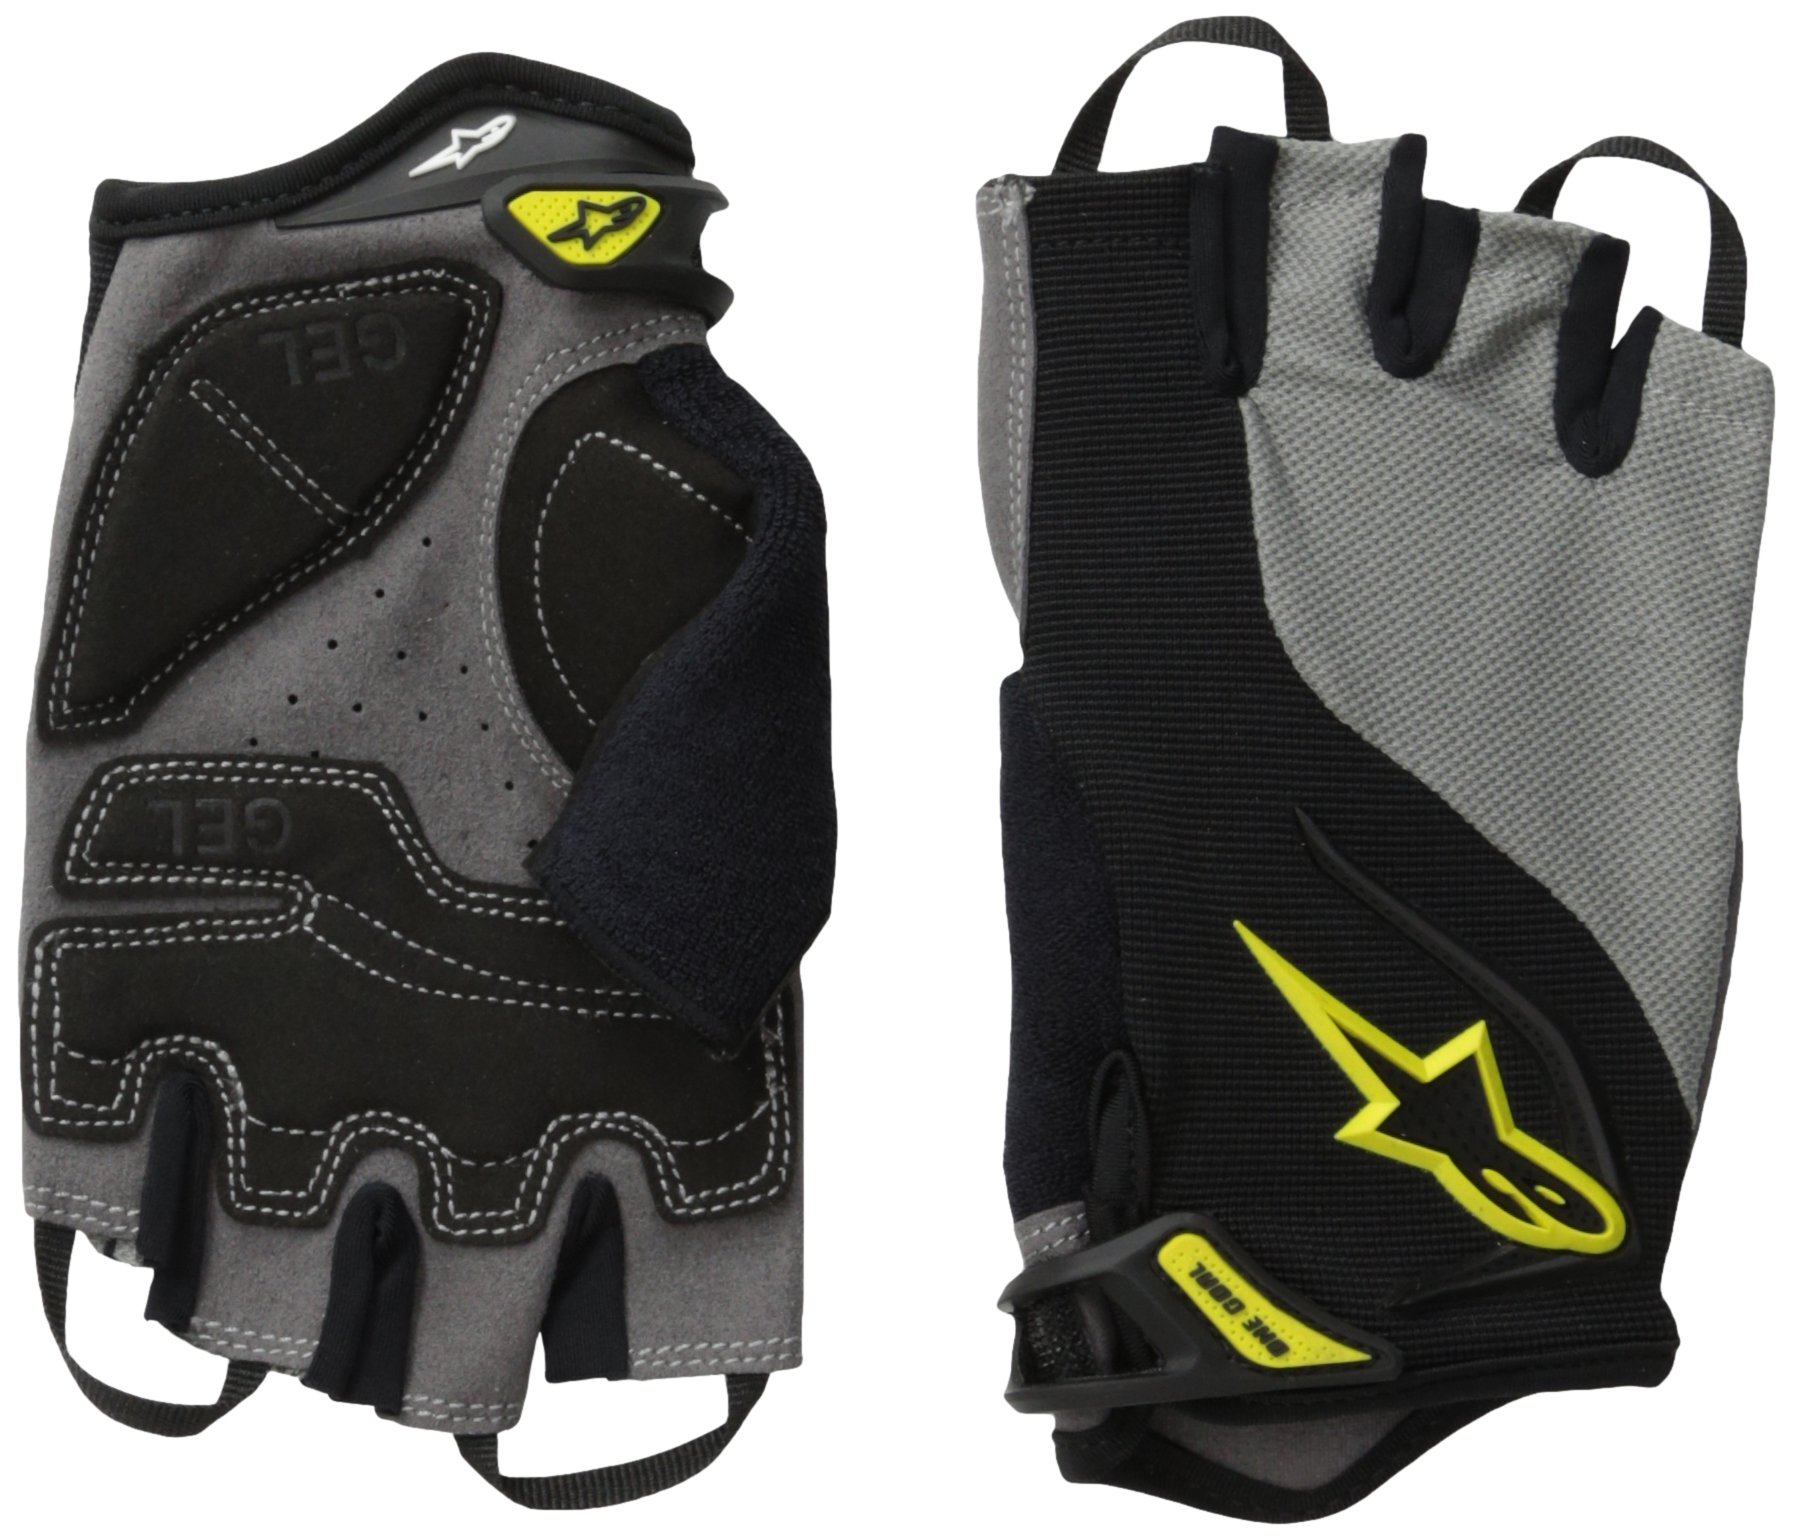 Alpinestars Pro-Light Short Finger Glove, X-Large, Black Gray Yellow